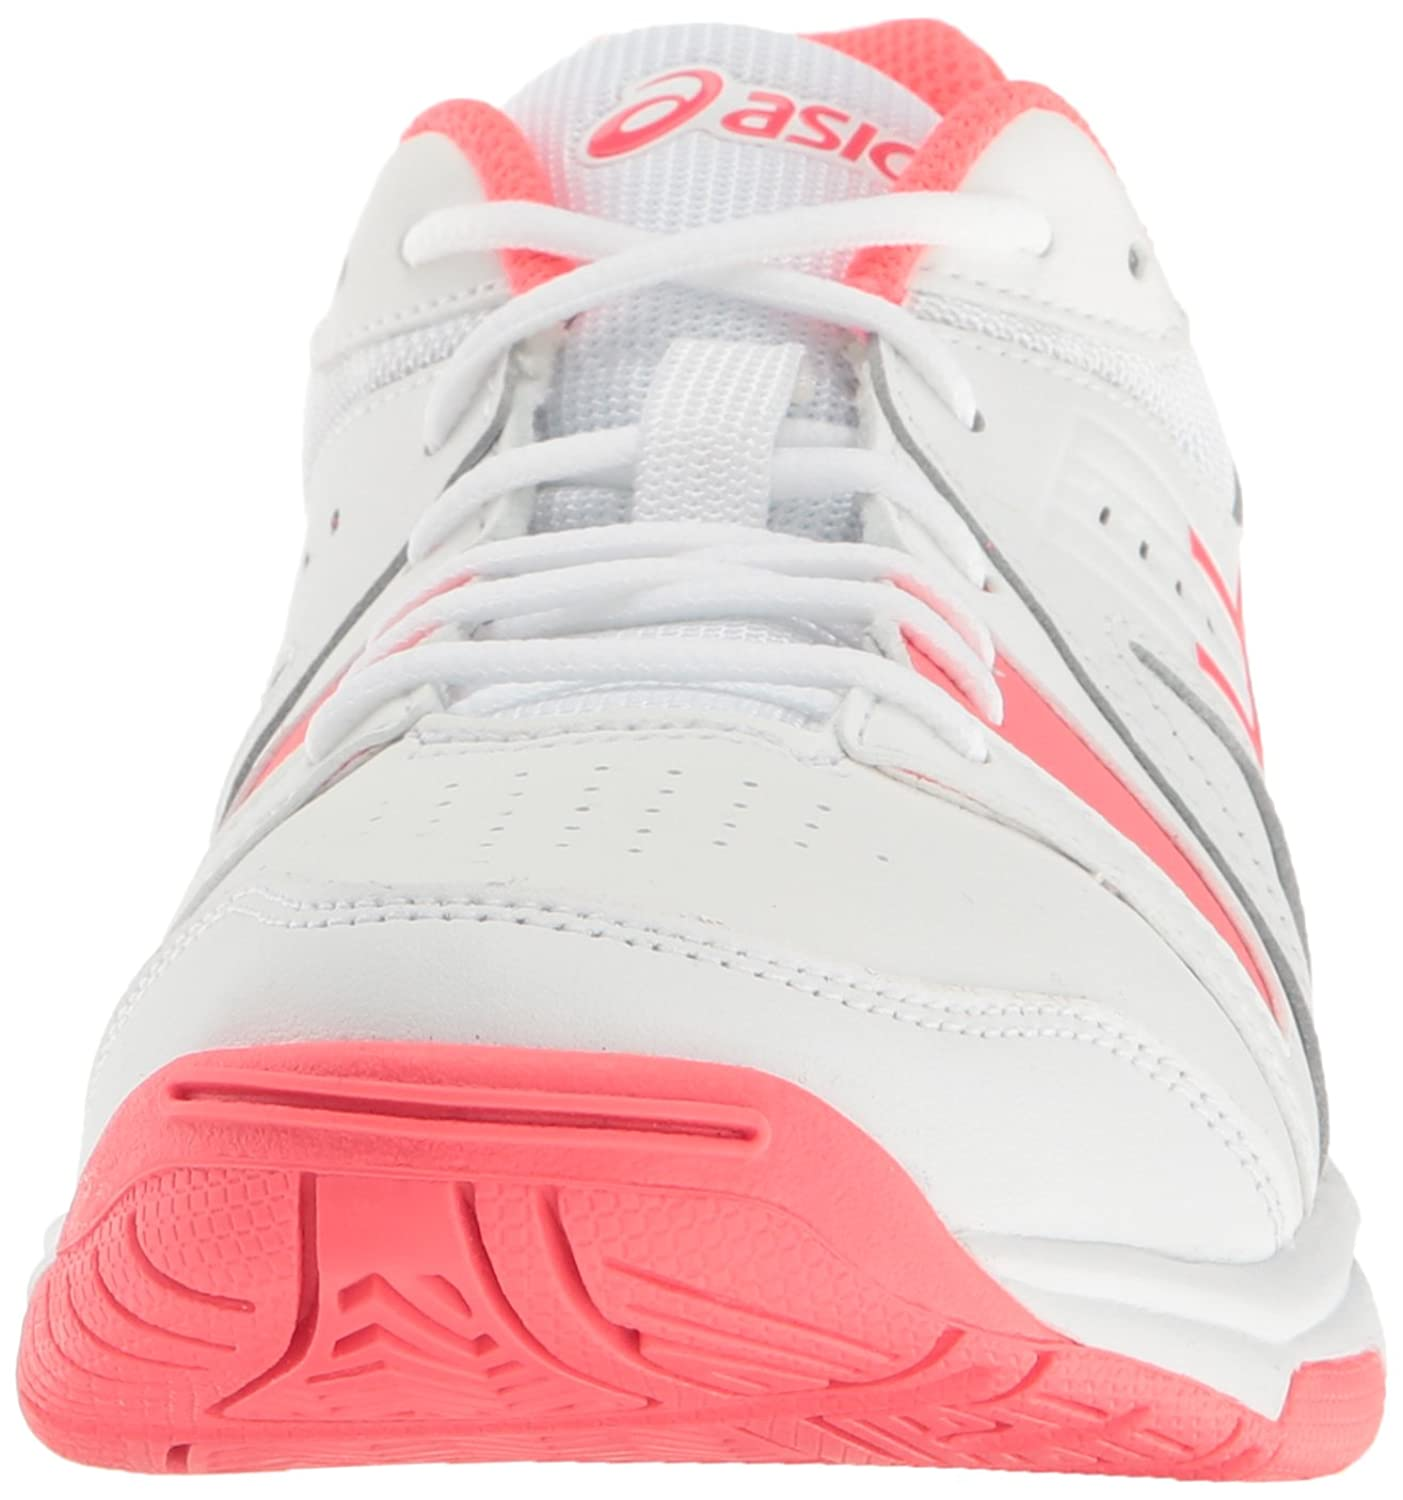 Asics Kvinners Tennissko Amazon bpF78ki